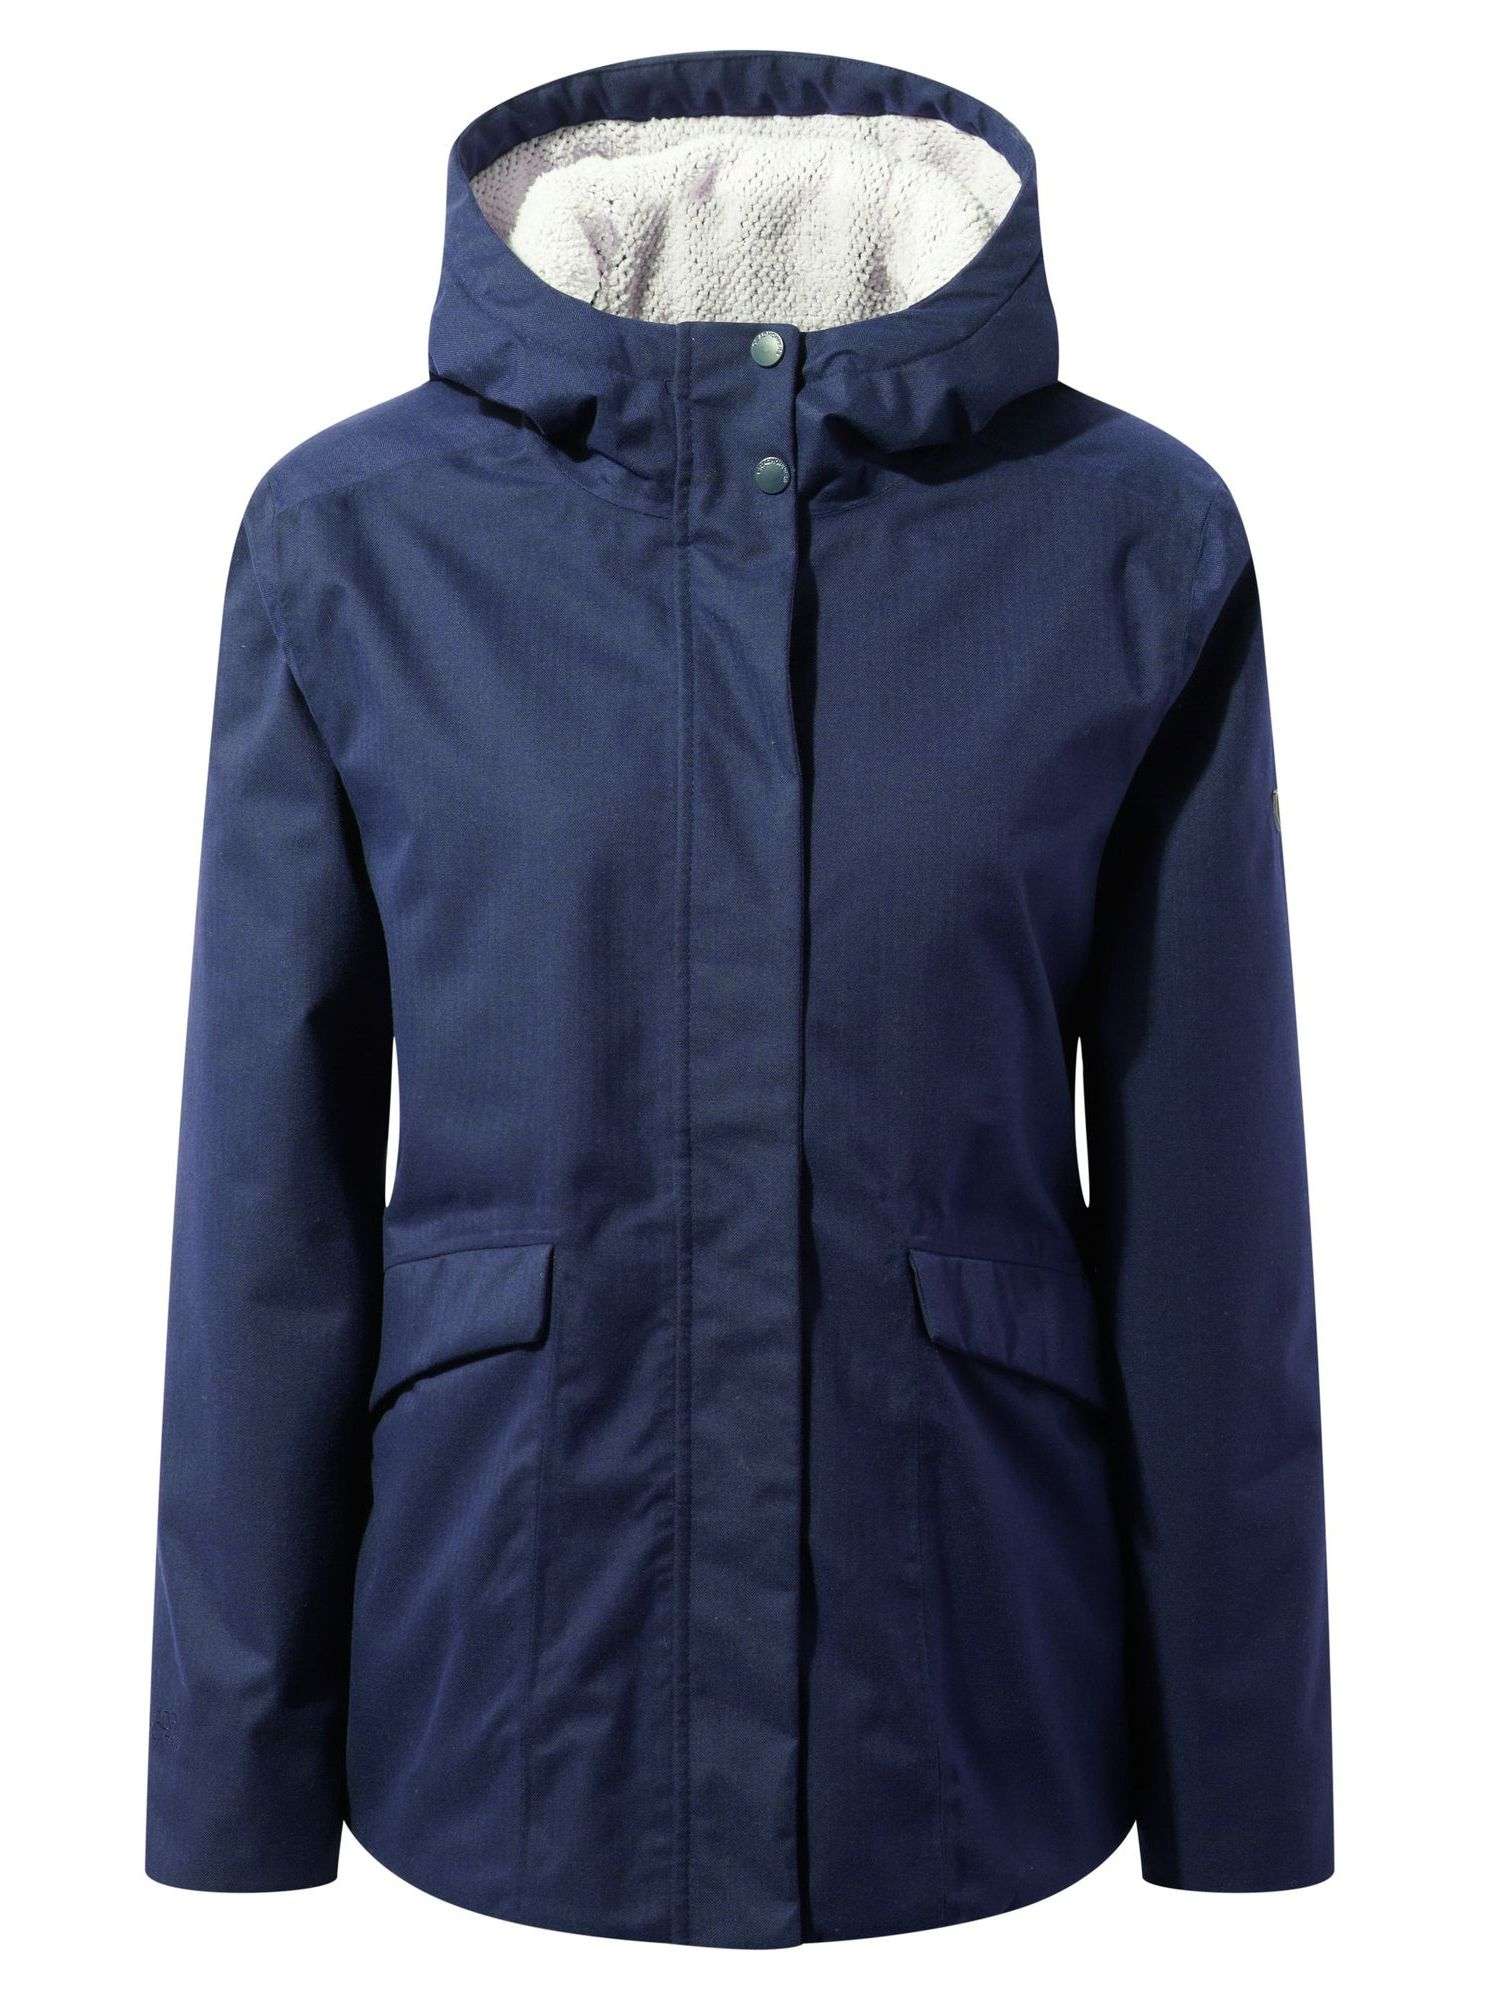 Craghoppers Lindi Insulating Waterproof Jacket, Petrol